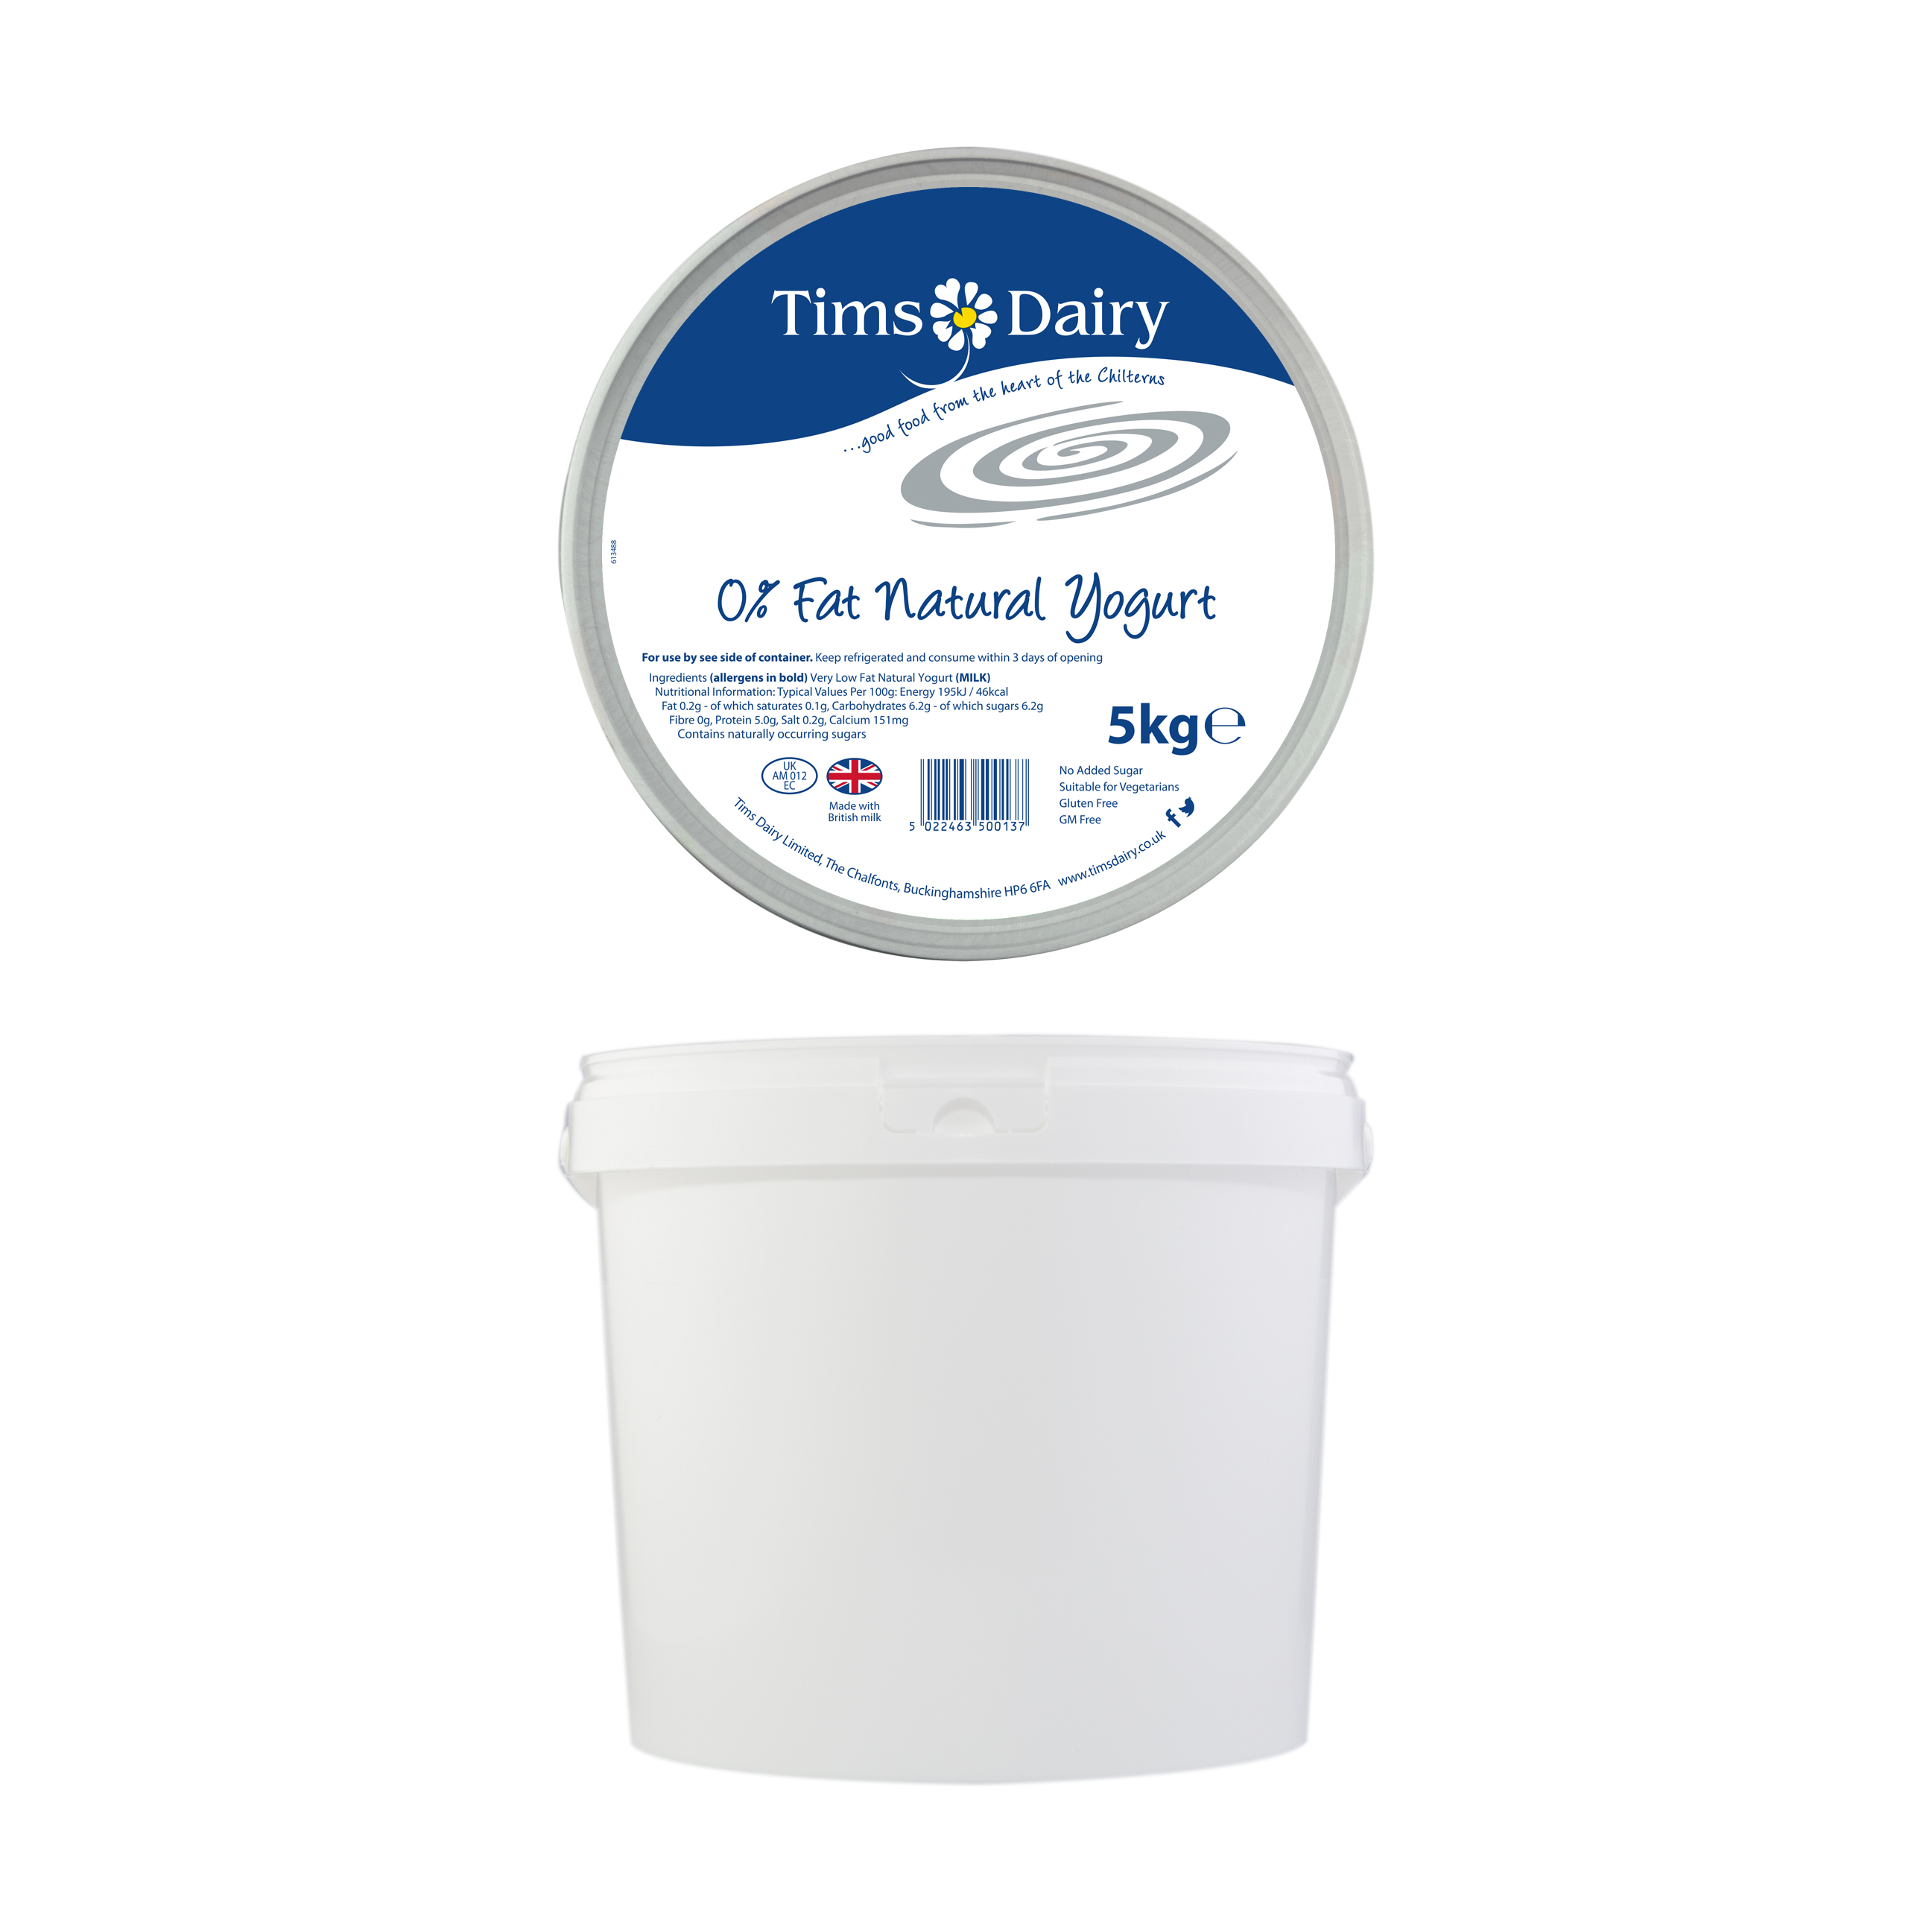 0% Fat Natural Yogurt